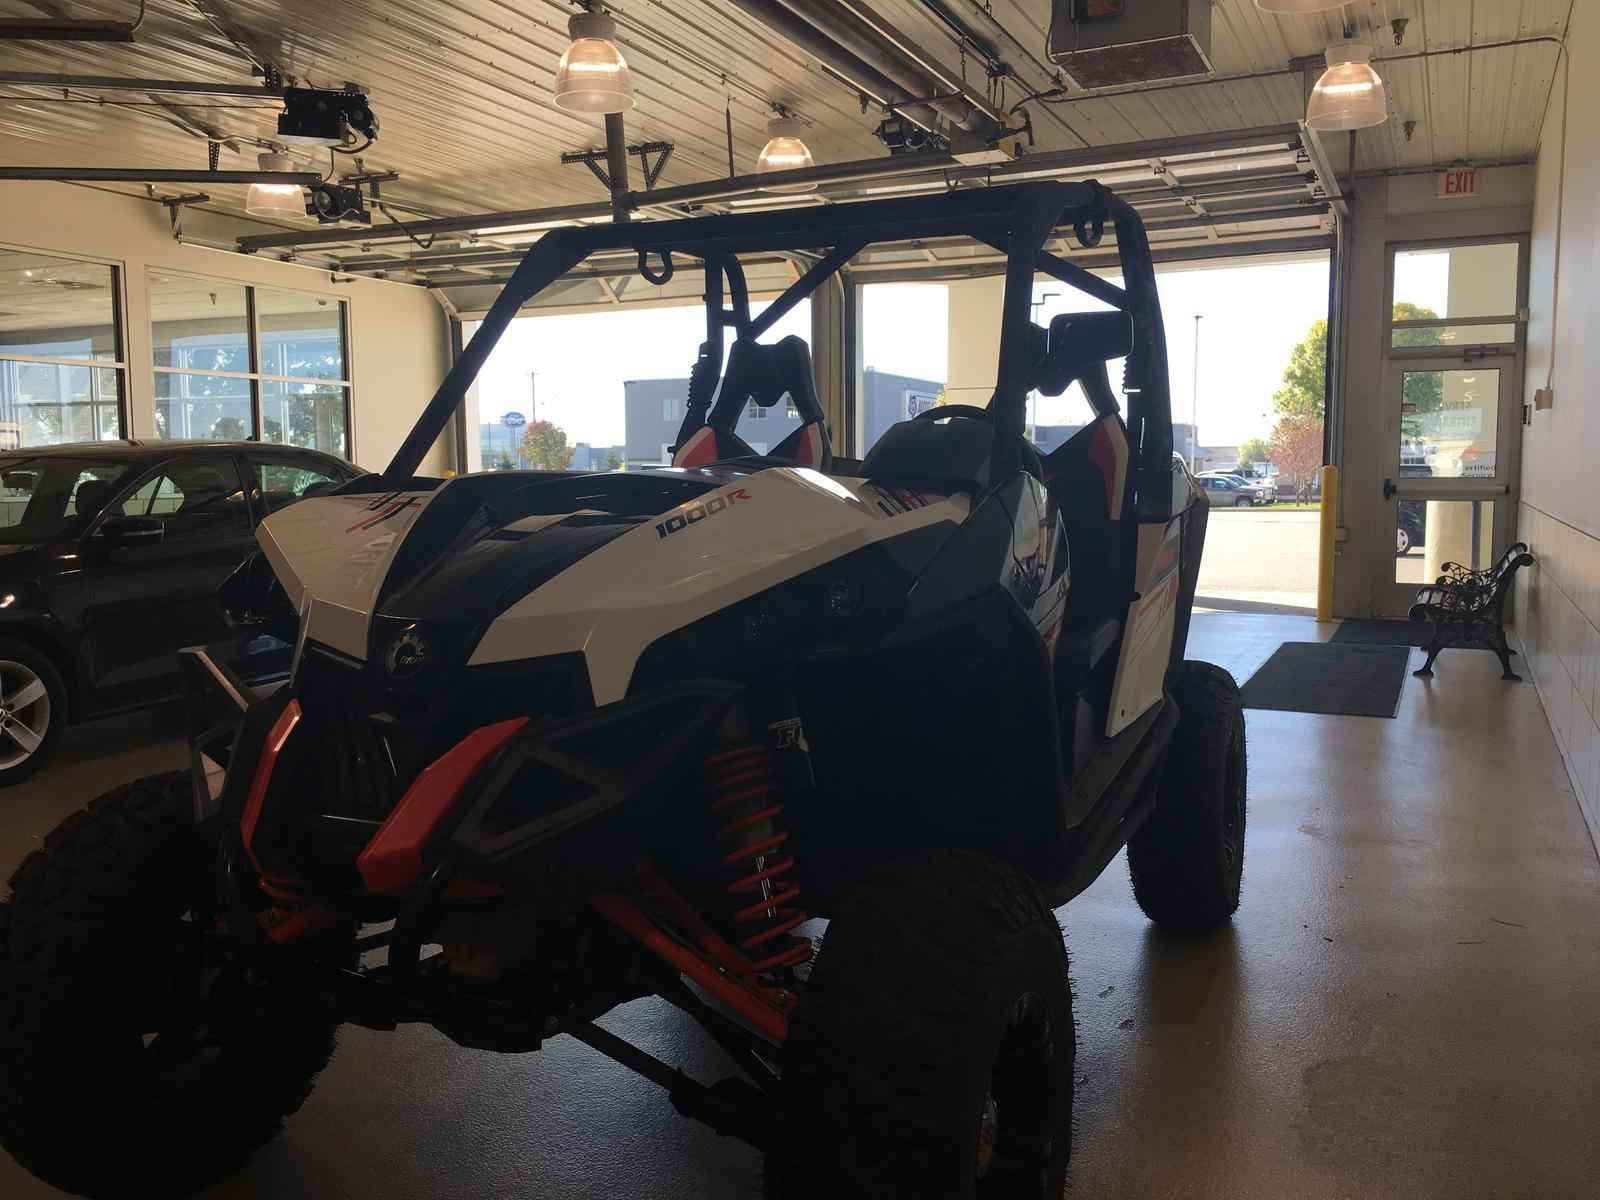 Used 2014 can am maverick 1000r xrs dps atvs for sale in minnesota used 2014 can am maverick 1000r xrs dps atvs for sale in minnesota 2014 can am maverick 1000r xrs dps nice machine 30 itp terracross tires new 14 publicscrutiny Gallery